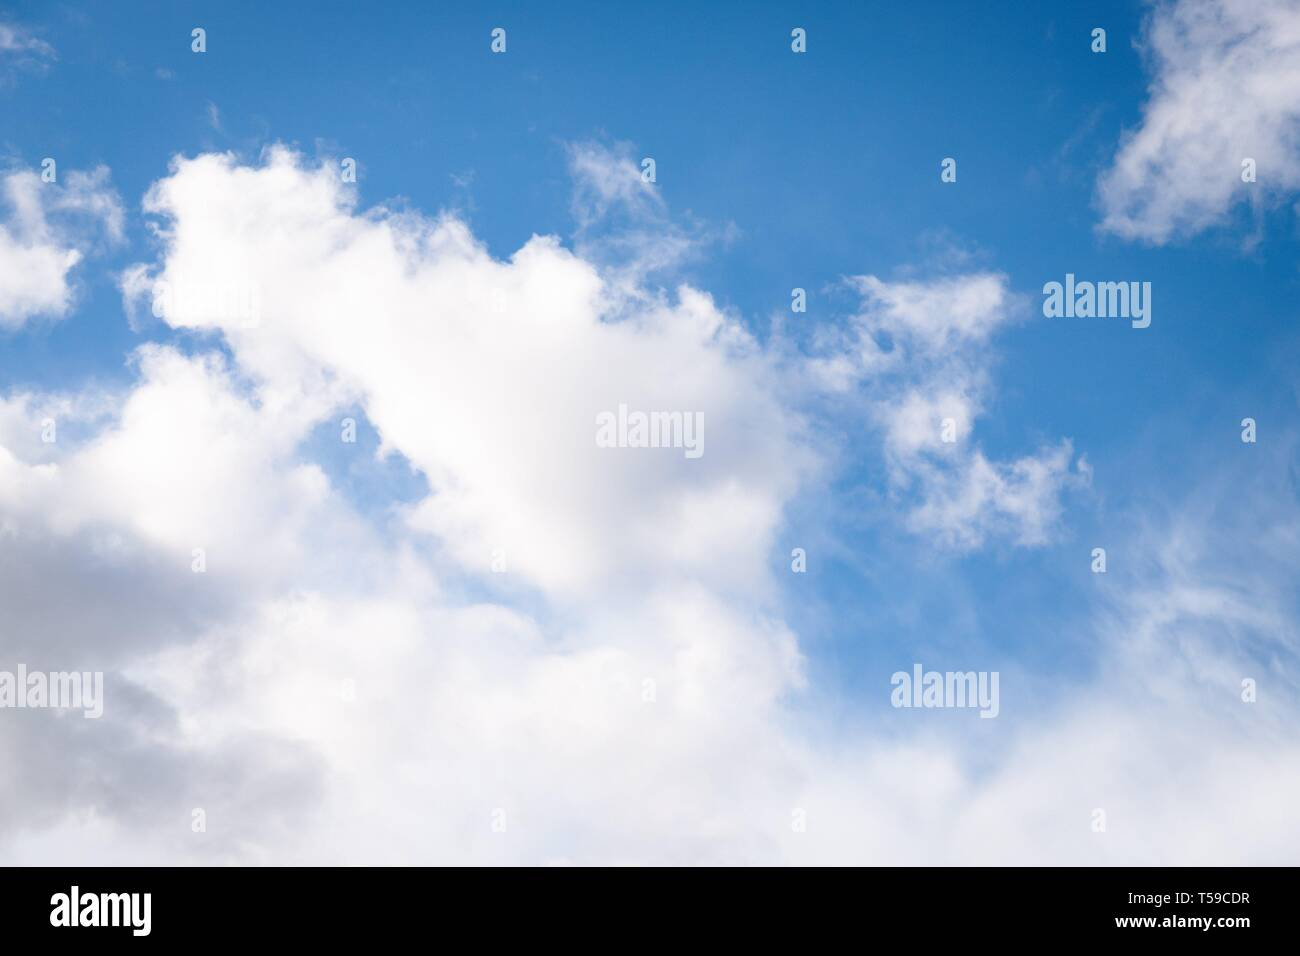 White fluffy clouds on a blue sky background Stock Photo